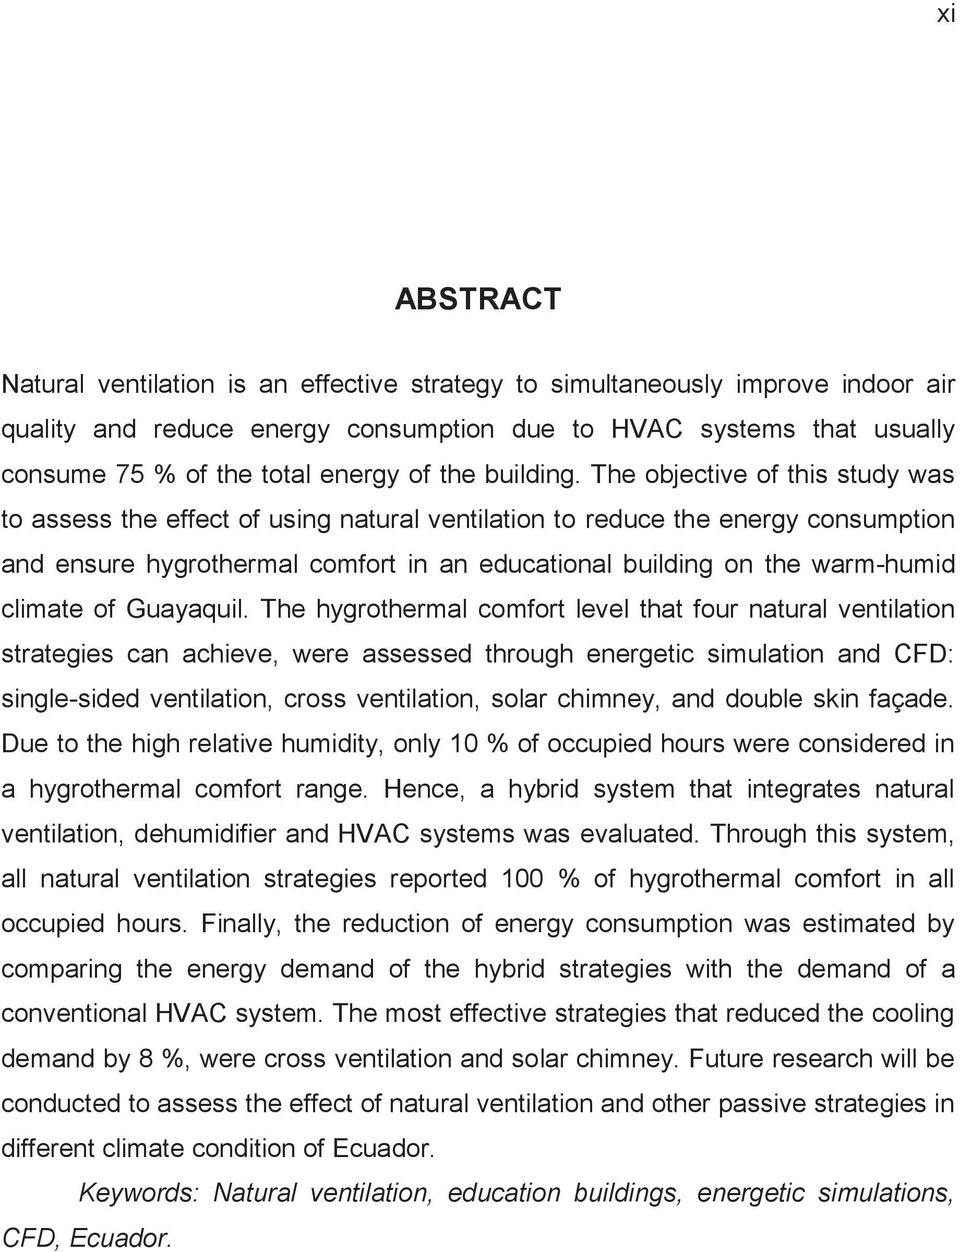 The objective of this study was to assess the effect of using natural ventilation to reduce the energy consumption and ensure hygrothermal comfort in an educational building on the warm-humid climate